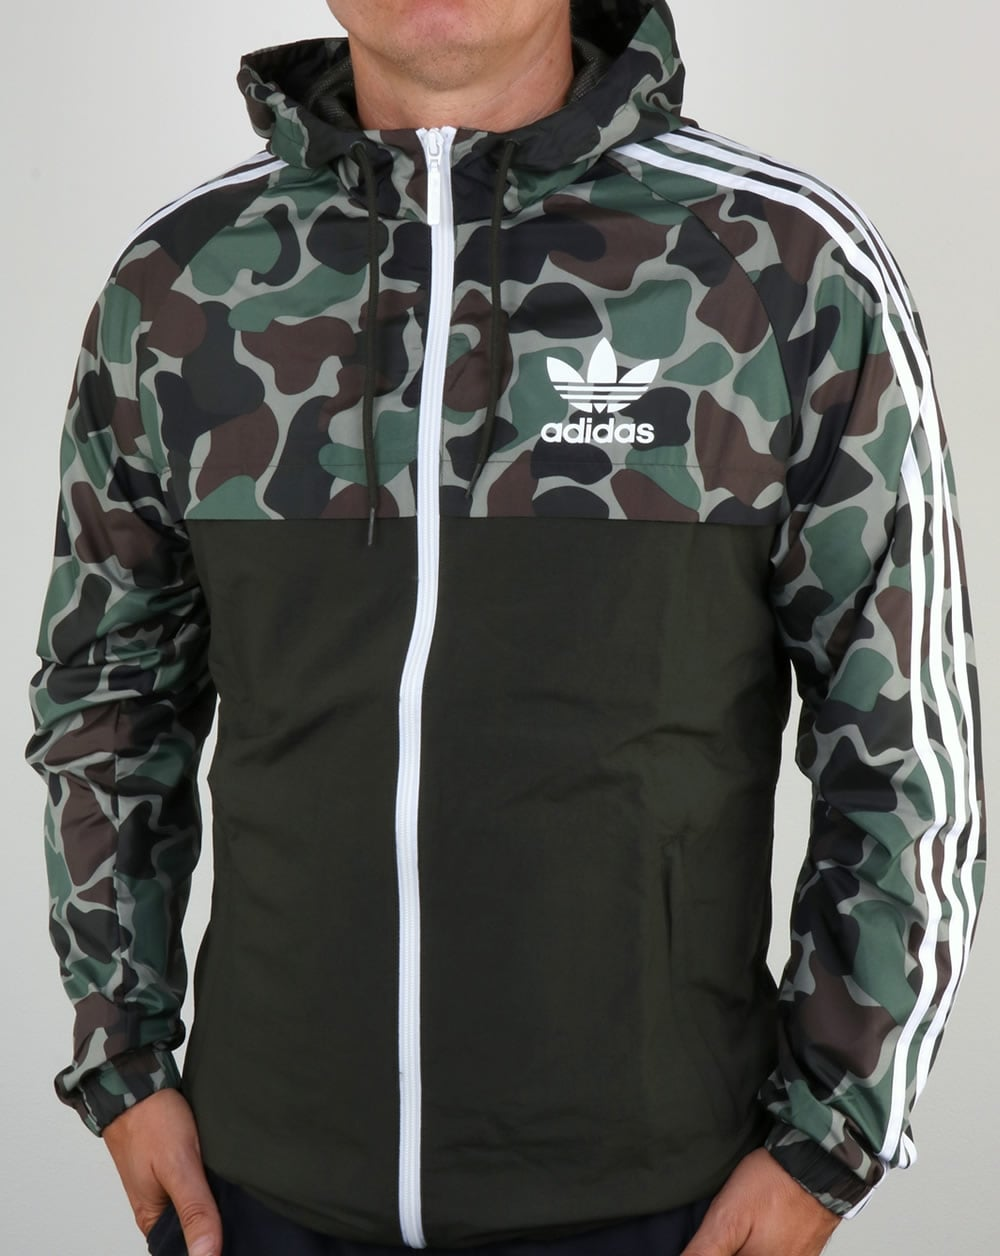 Adidas Originals Camo Reversible Windbreakermens,jacket,parka ...